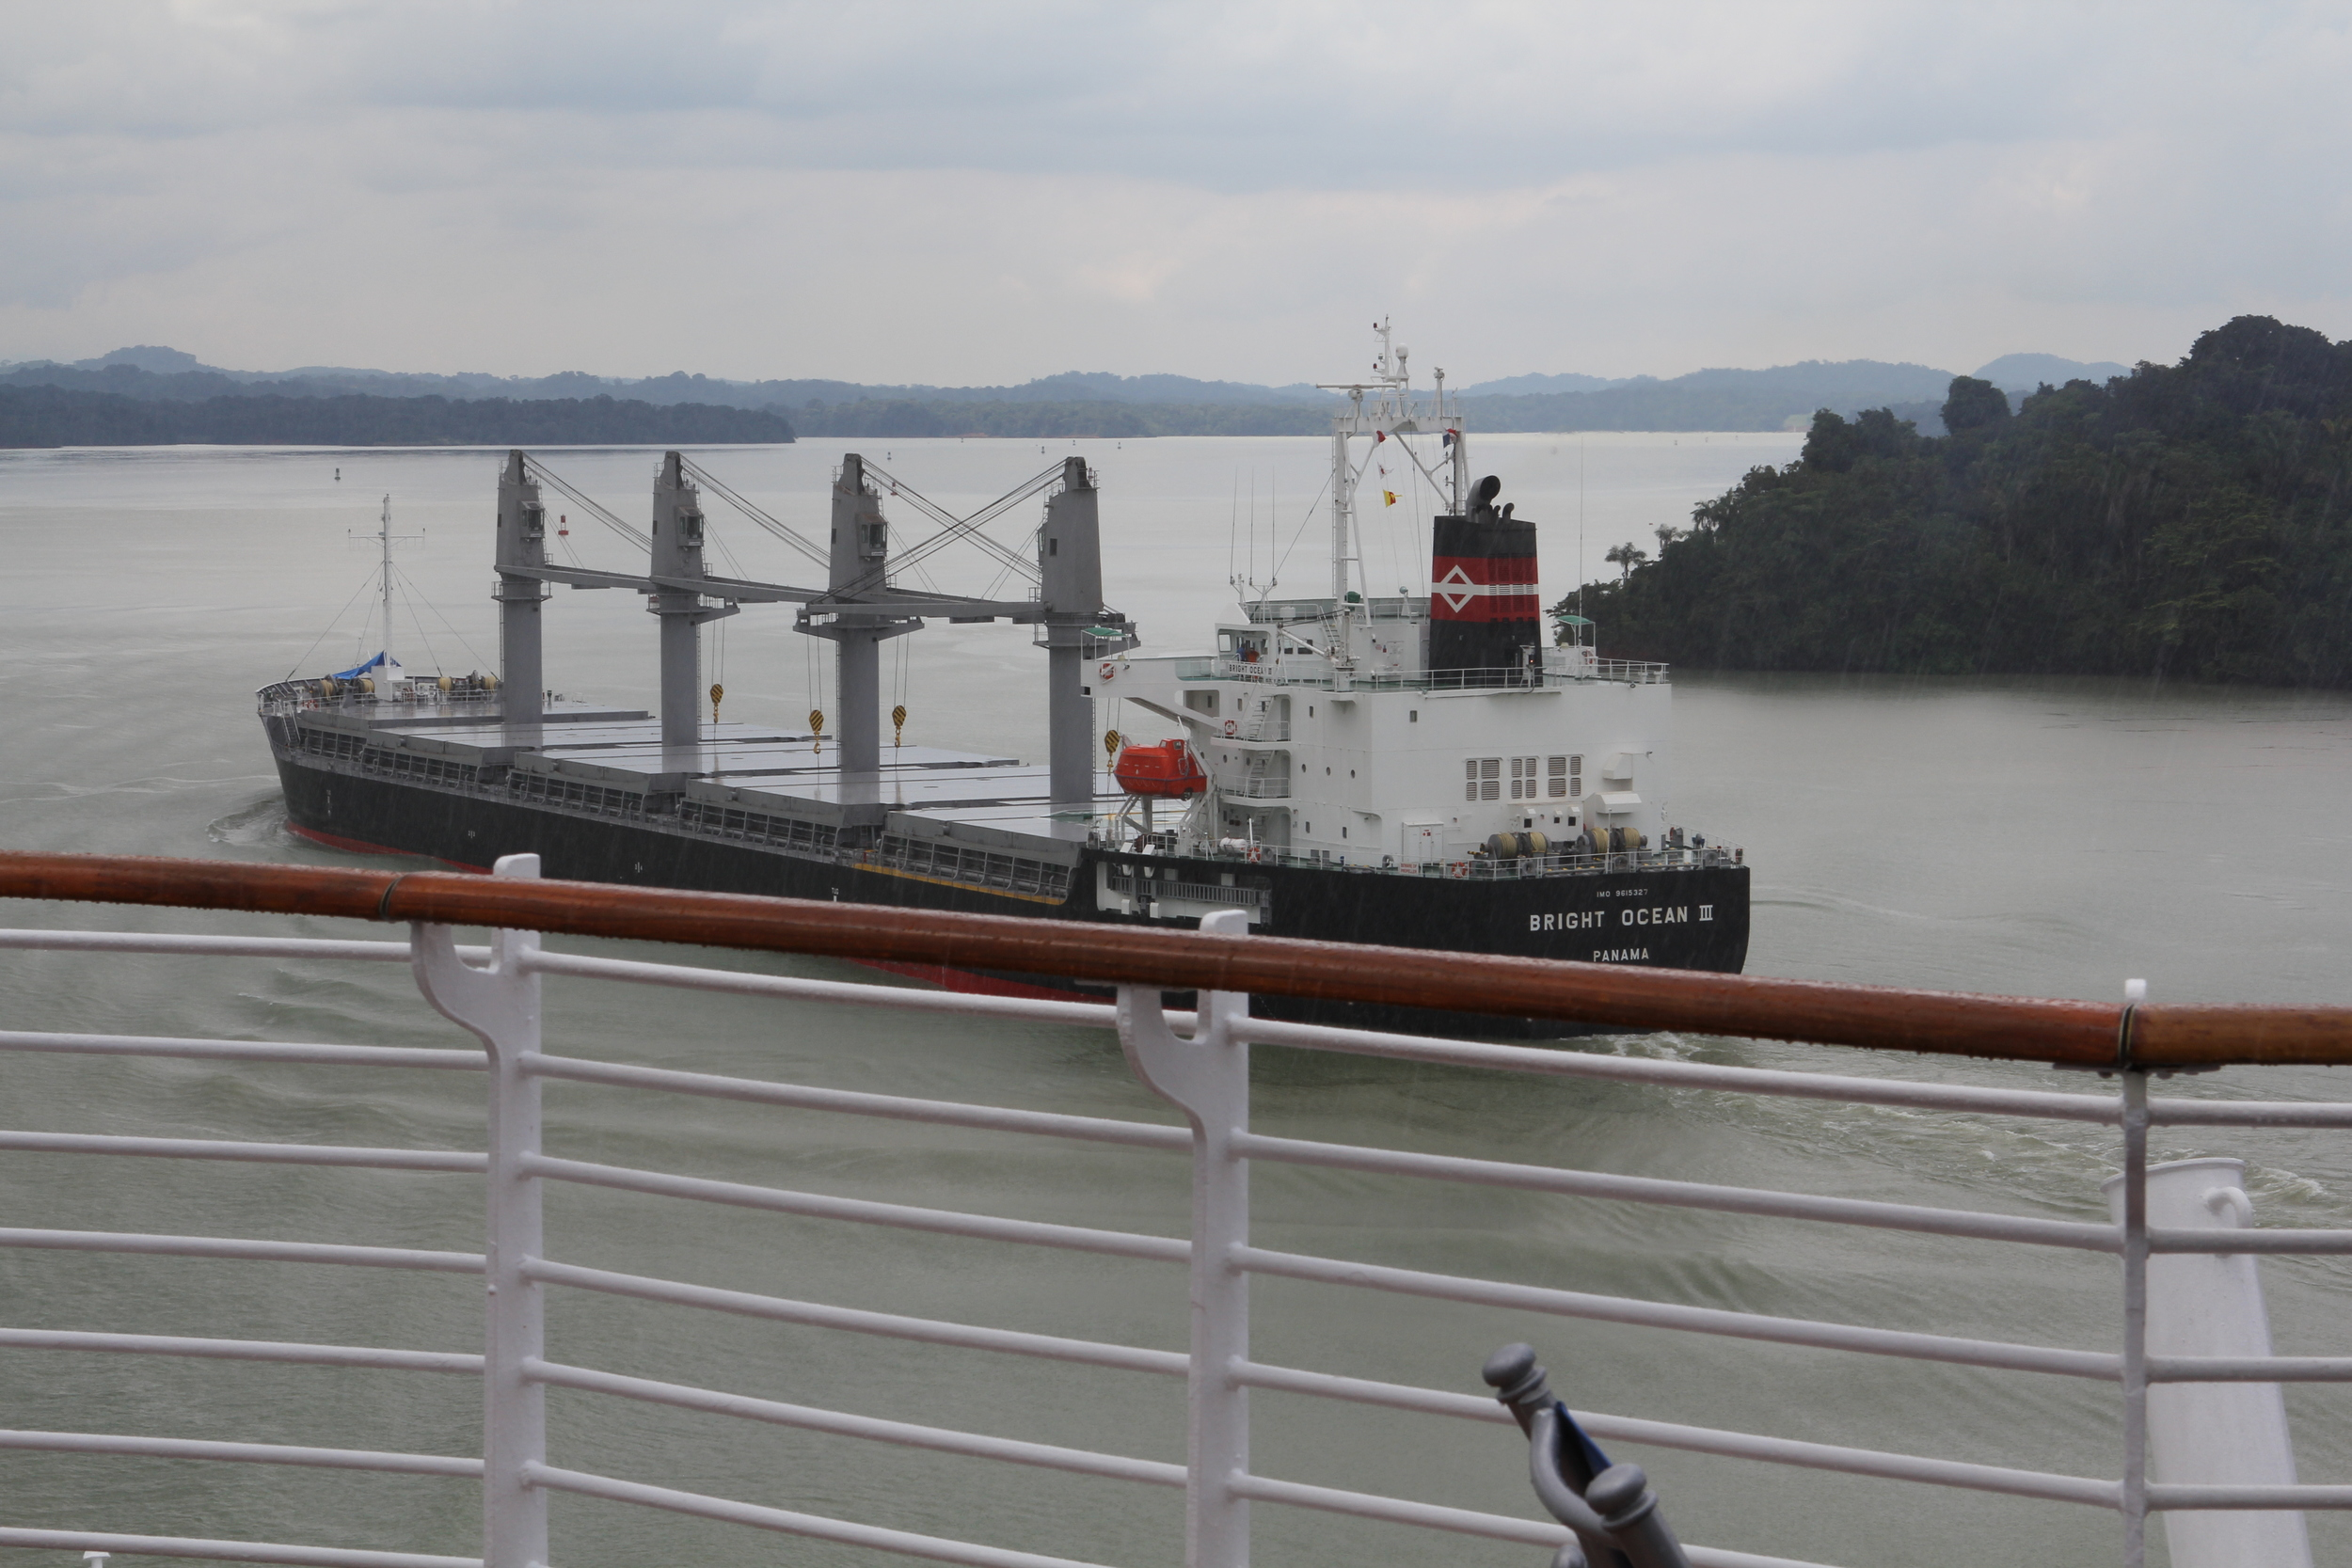 Passing other large ships in the lake.